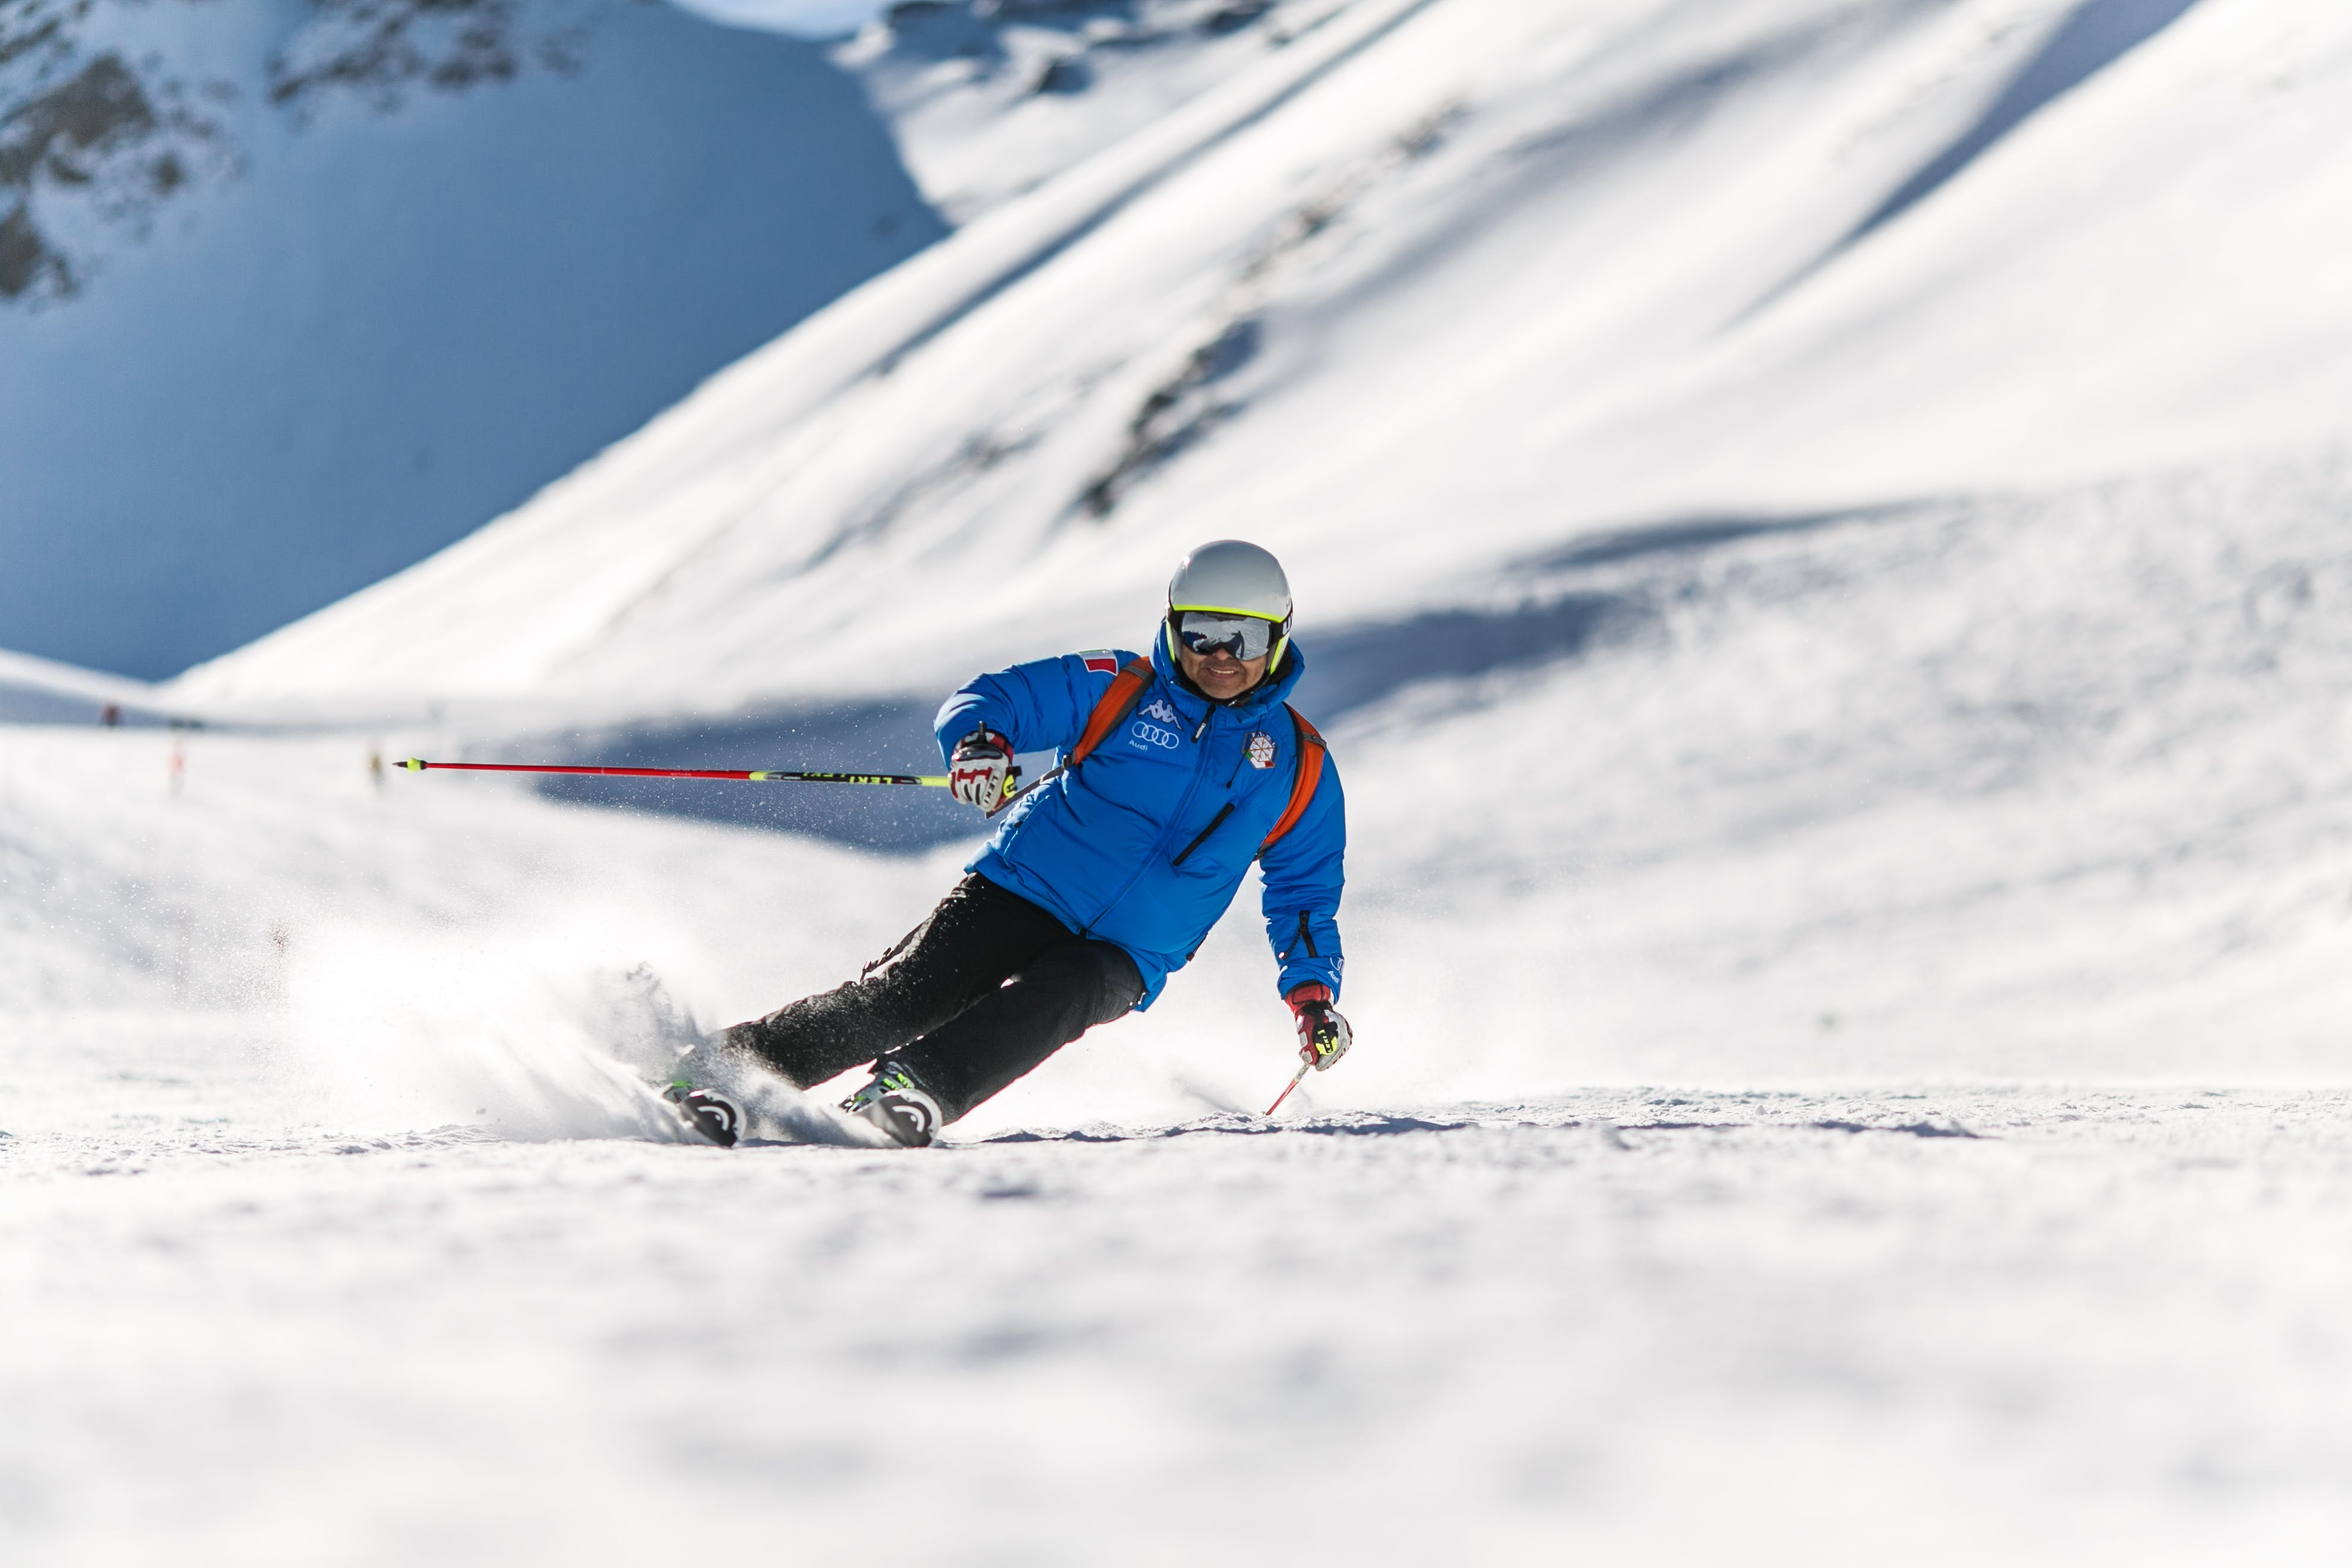 Man Snow Skiing on Bed of Snow during Winter